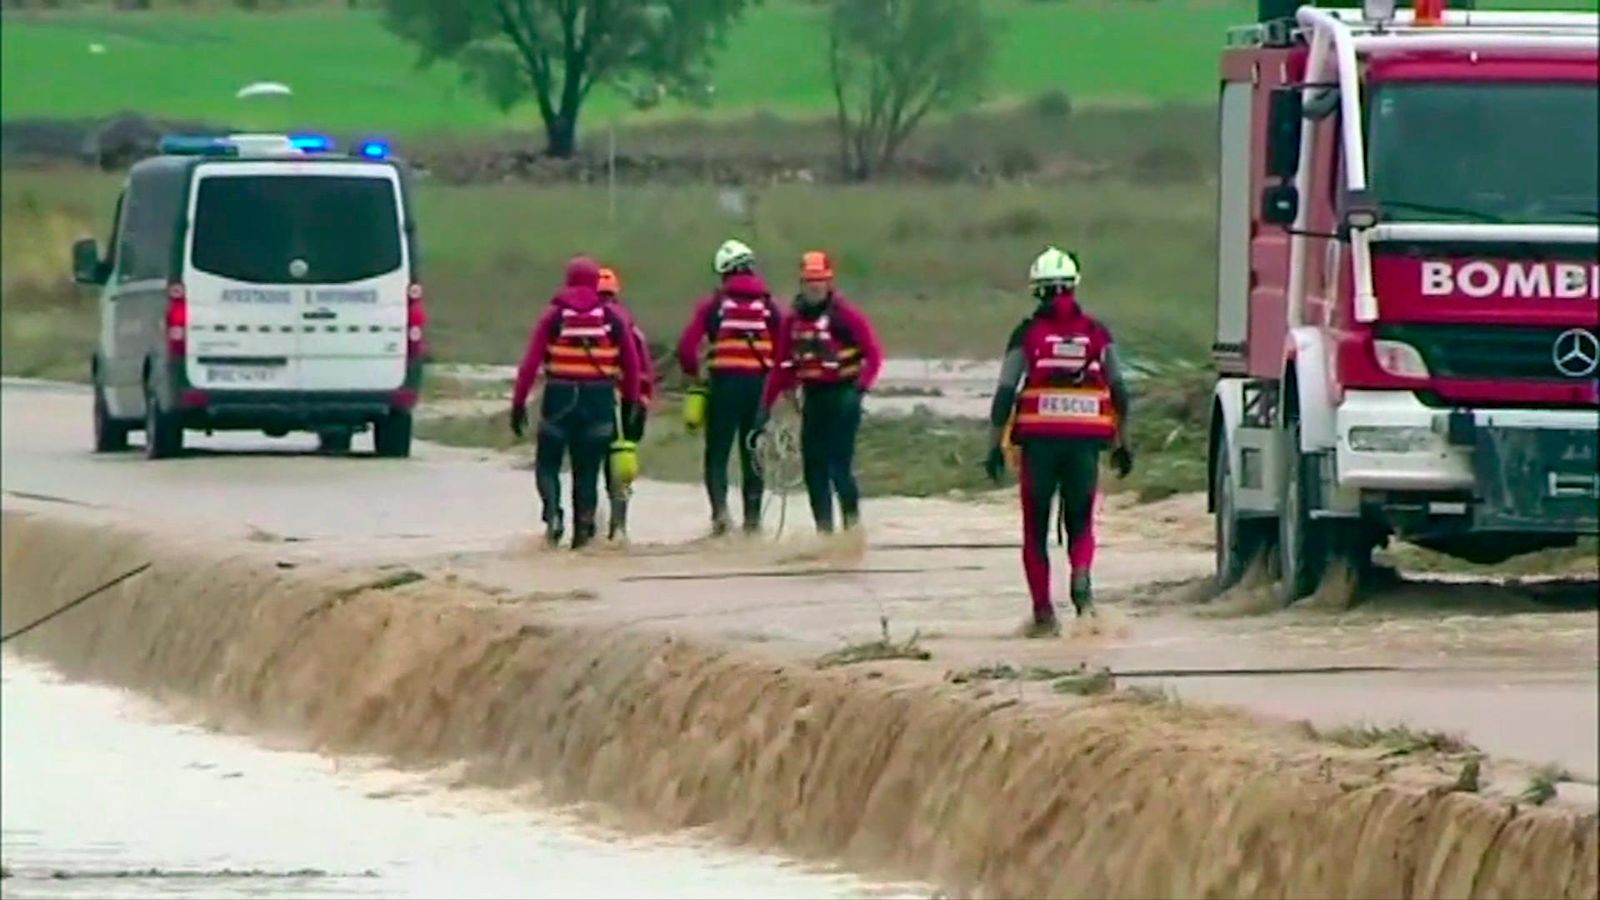 In this image made from video provided by Atlas, firefightters attach ropes to an overturned vehicle in which two people were drowned by floodwater, in Caudete, Spain, Thursday, Sept. 12 2019.  A large area of southeast Spain was battered Thursday by what was forecast to be its heaviest rainfall in more than a century, with the storms wreaking widespread destruction and killing at least two people. (Atlas via AP)